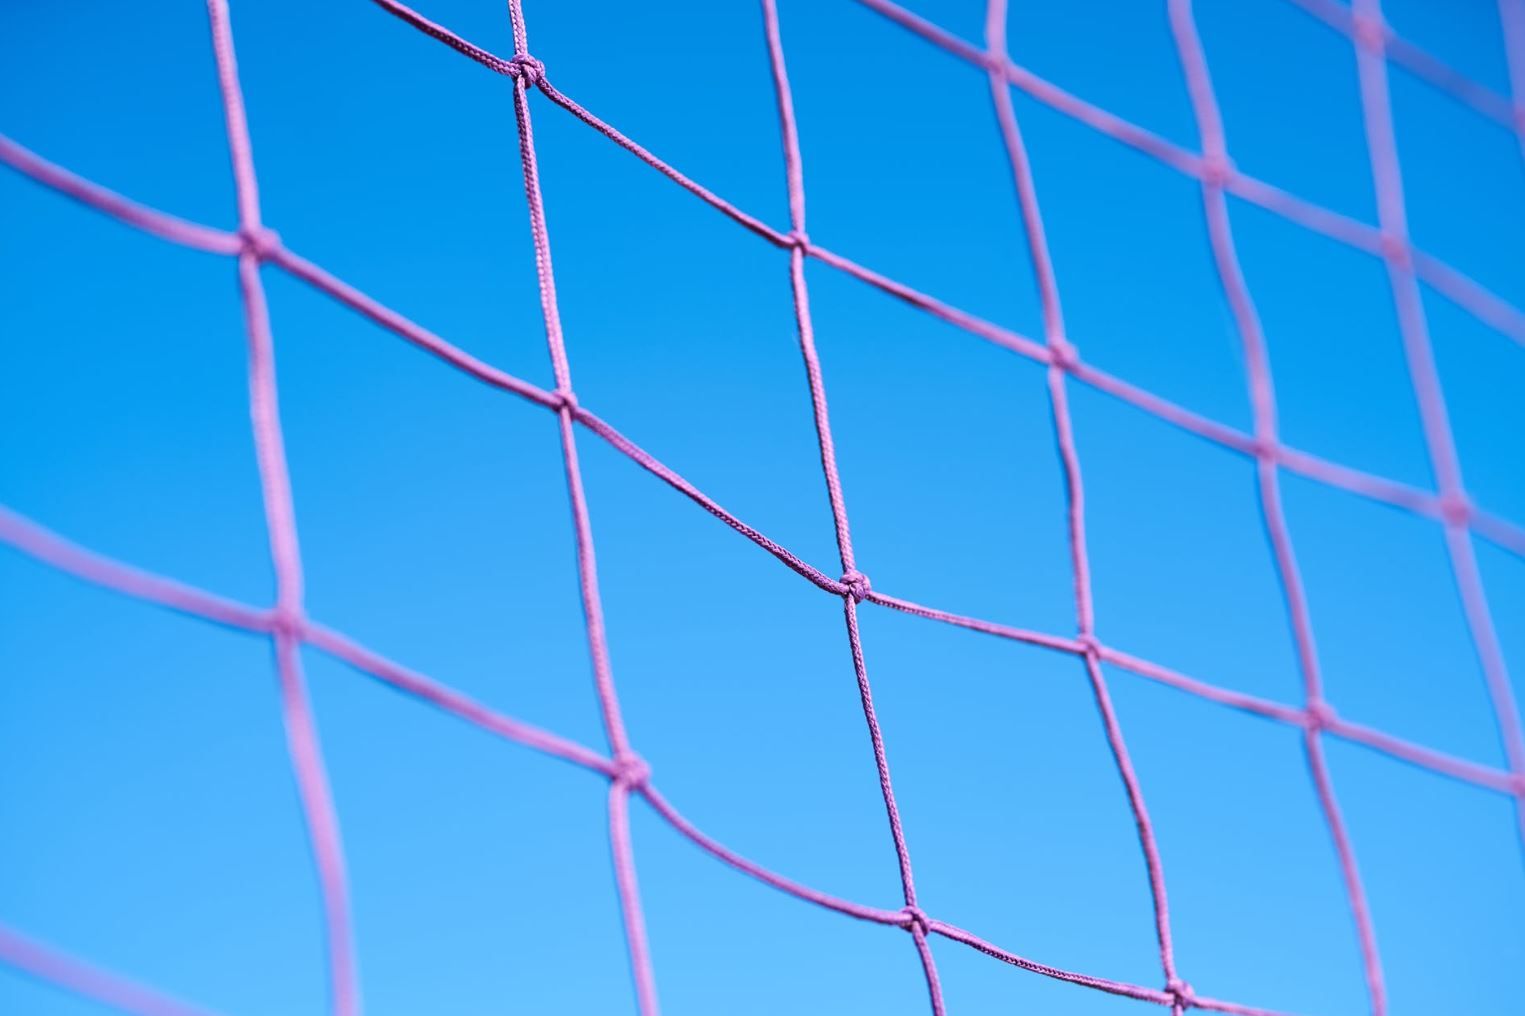 Large image of a pink net.